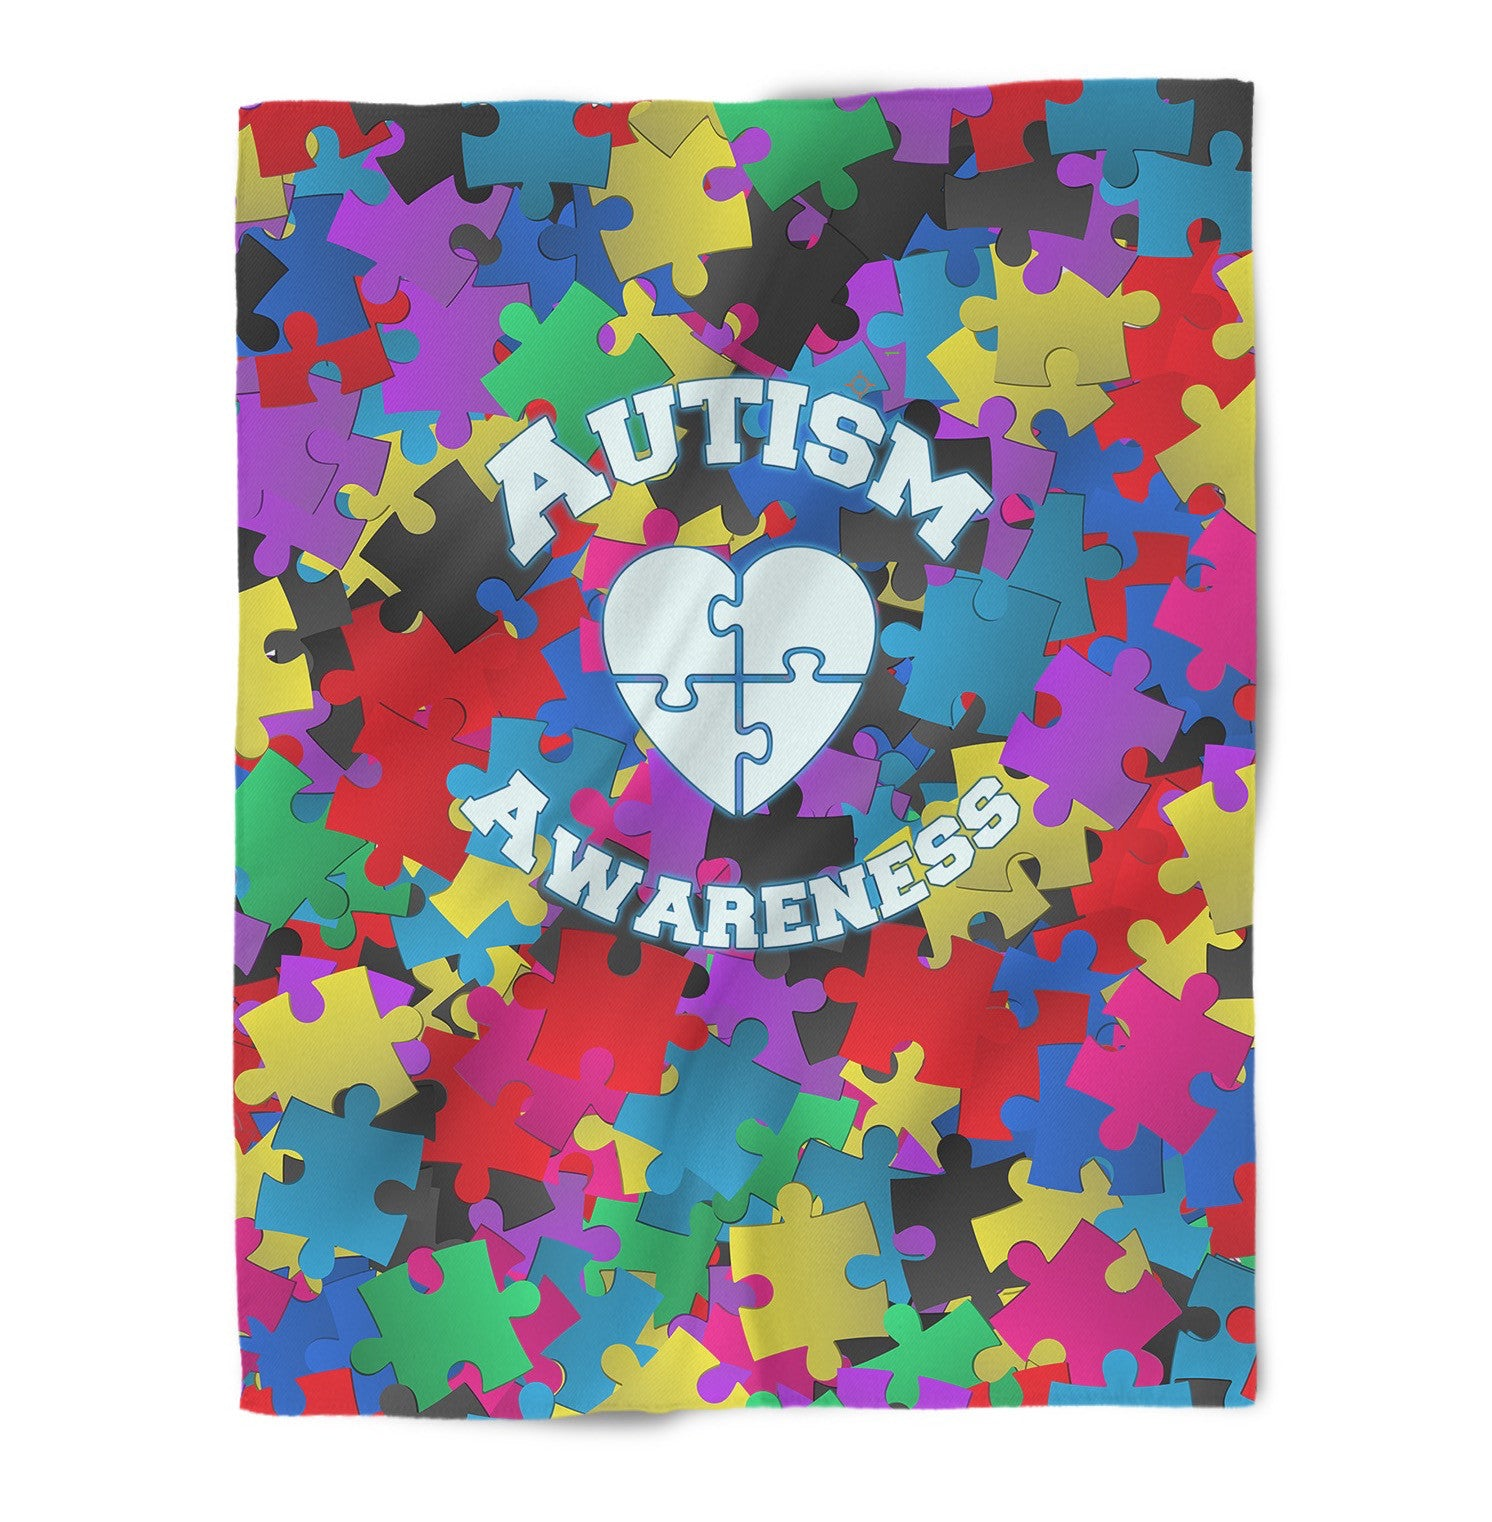 Autism Awareness Blanket